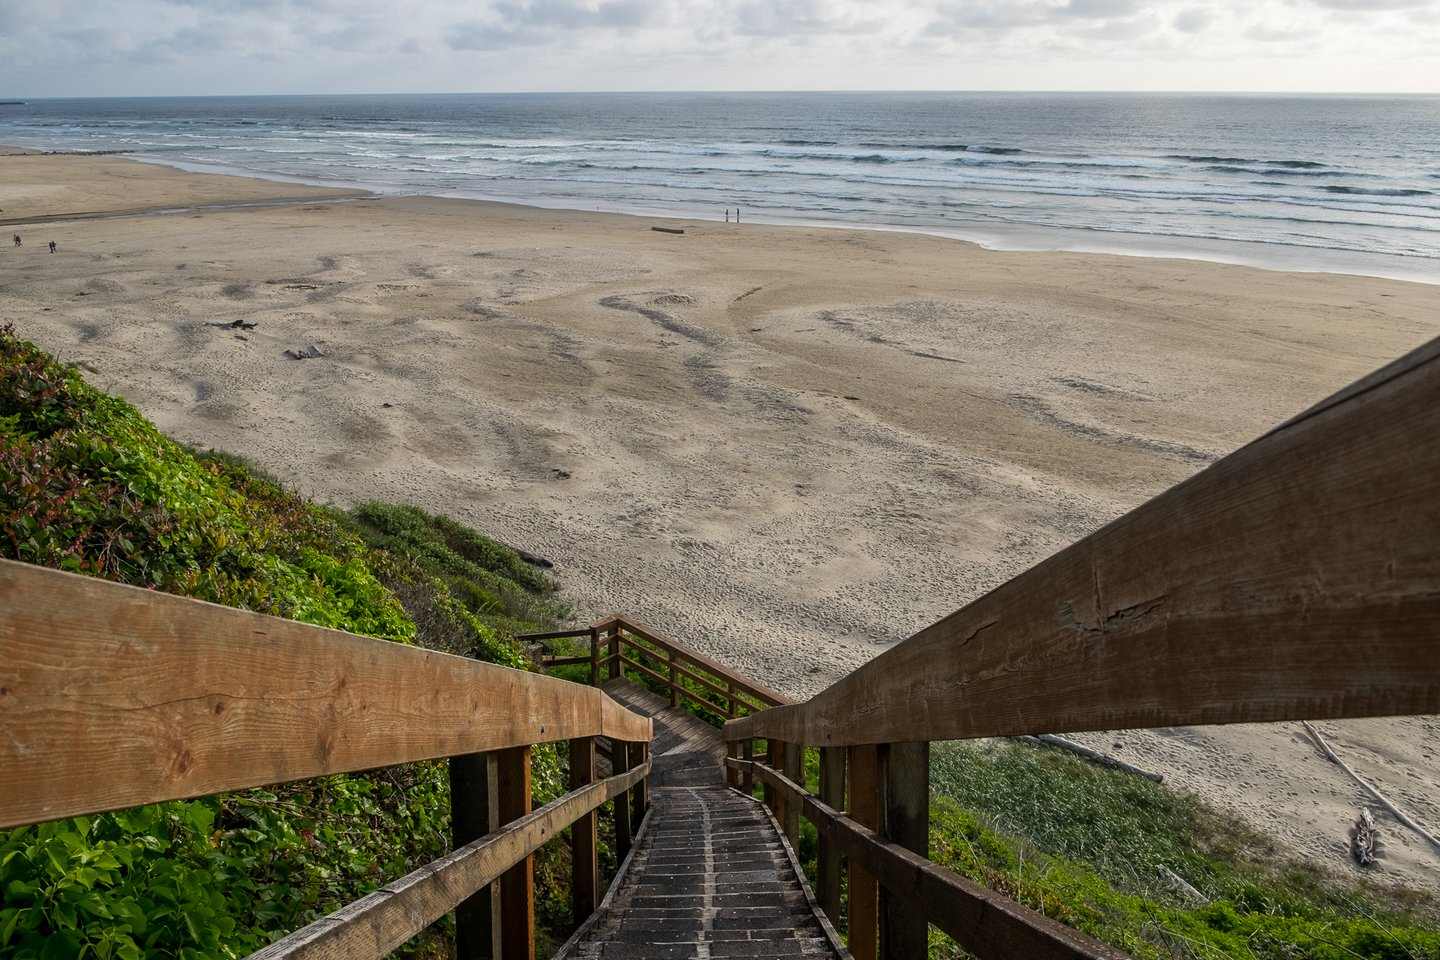 Take the stairs down to a wonderful sandy beach!